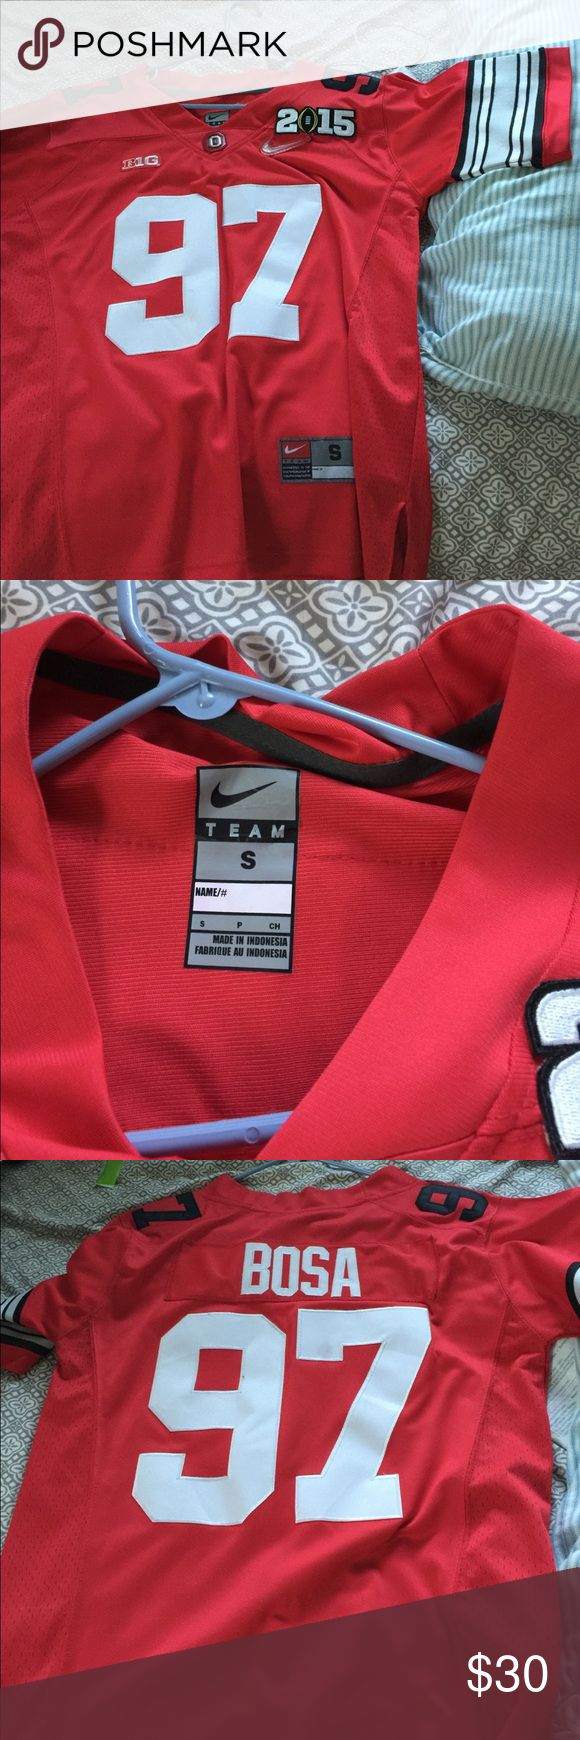 Nike Ohio state jersey Good condition never worn Tops